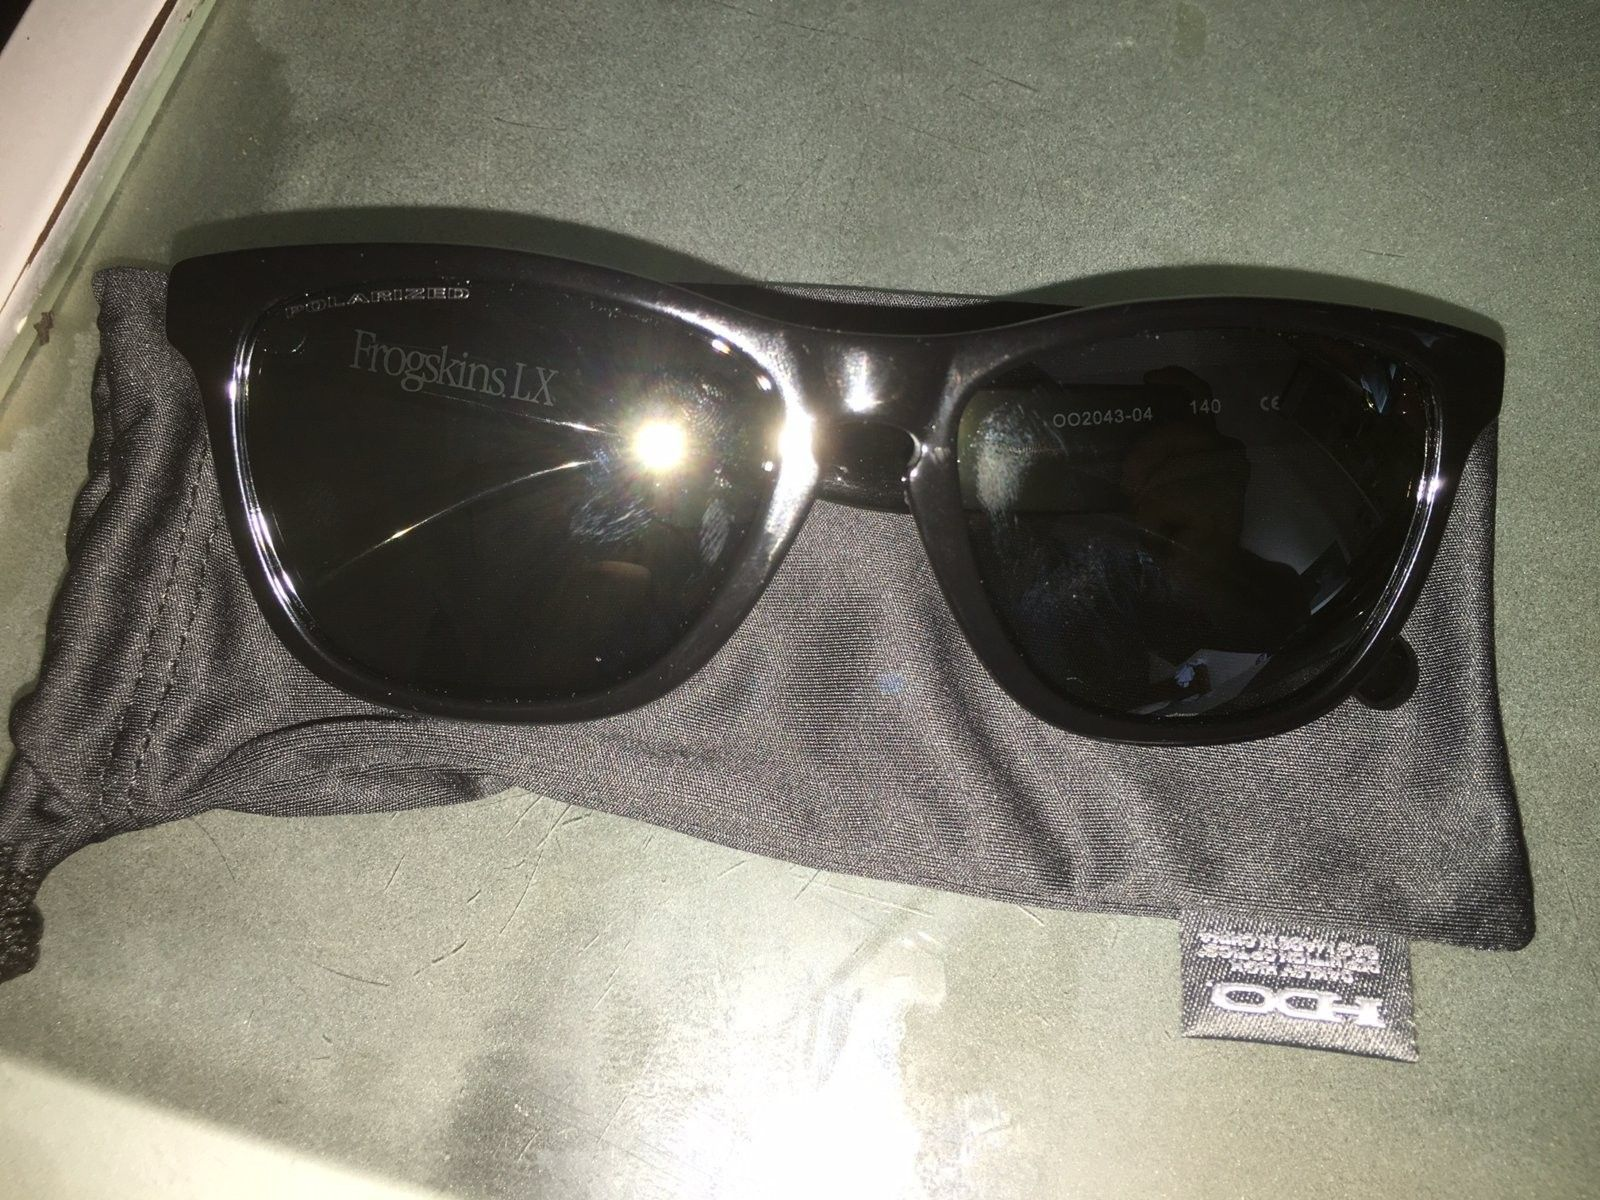 Frogskins LX OO2043-04 Authentic Check - IMG_3246.JPG